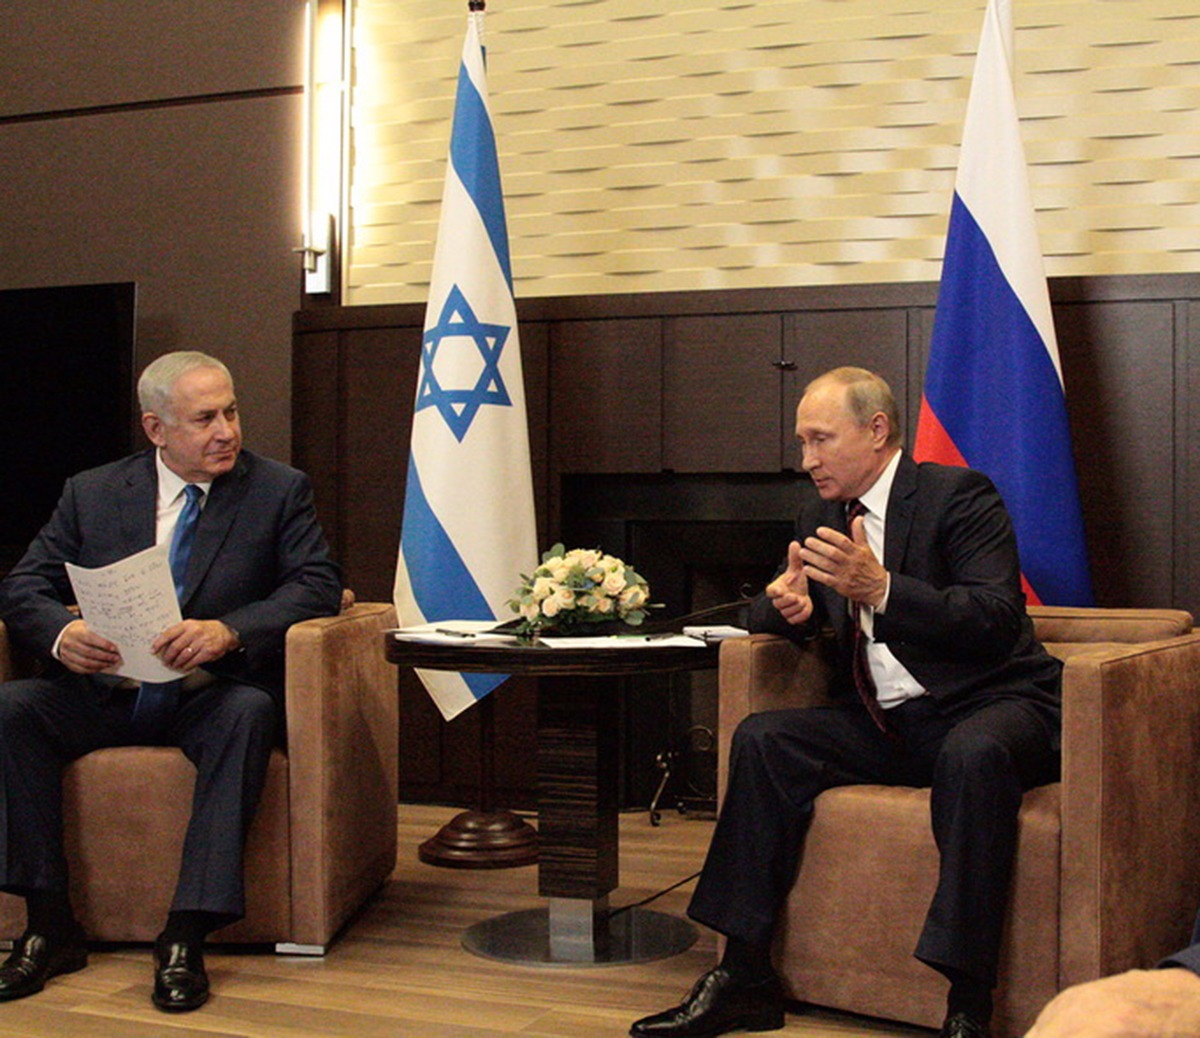 Urgent Meeting: Netanyahu Headed to Russia To Meet Putin Over Iran